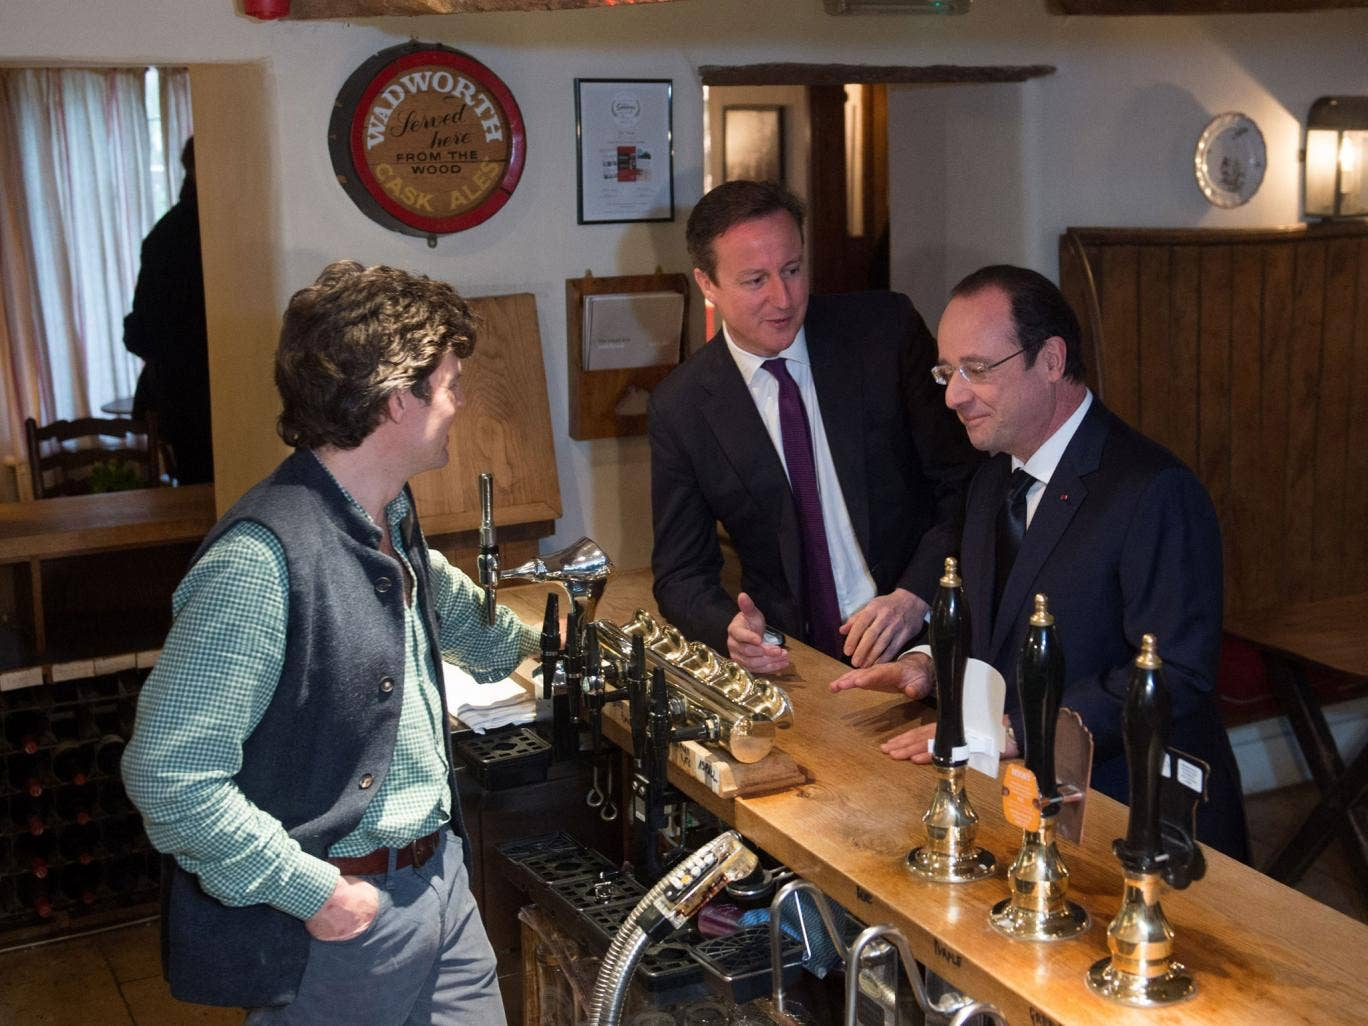 David Cameron and François Hollande at The Swan in Swinbrook, Oxfordshire on Friday